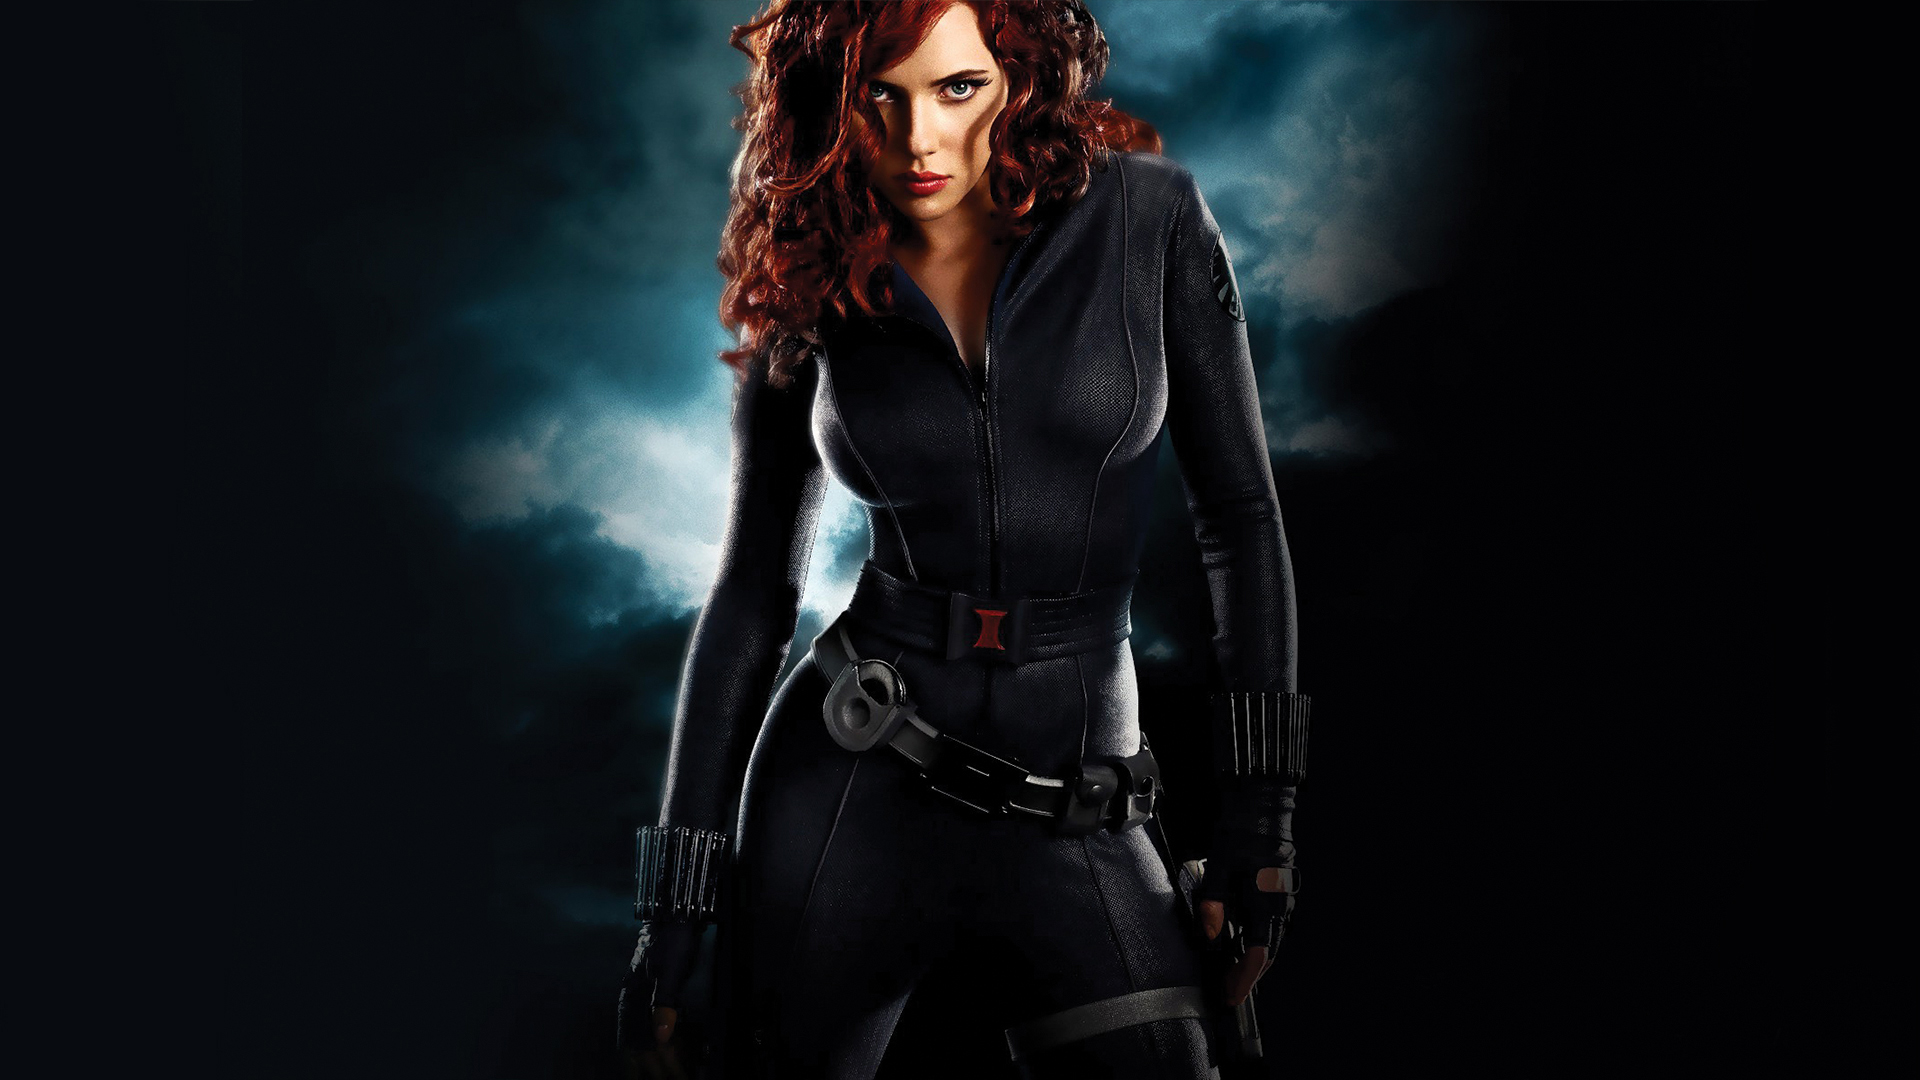 Free Download Pics Photos Wallpapers Avengers Black Widow Blackwidow Hi X 1920x1080 For Your Desktop Mobile Tablet Explore 70 Black Widow Wallpaper Scarlett Johansson Black Widow Wallpaper Black Widow